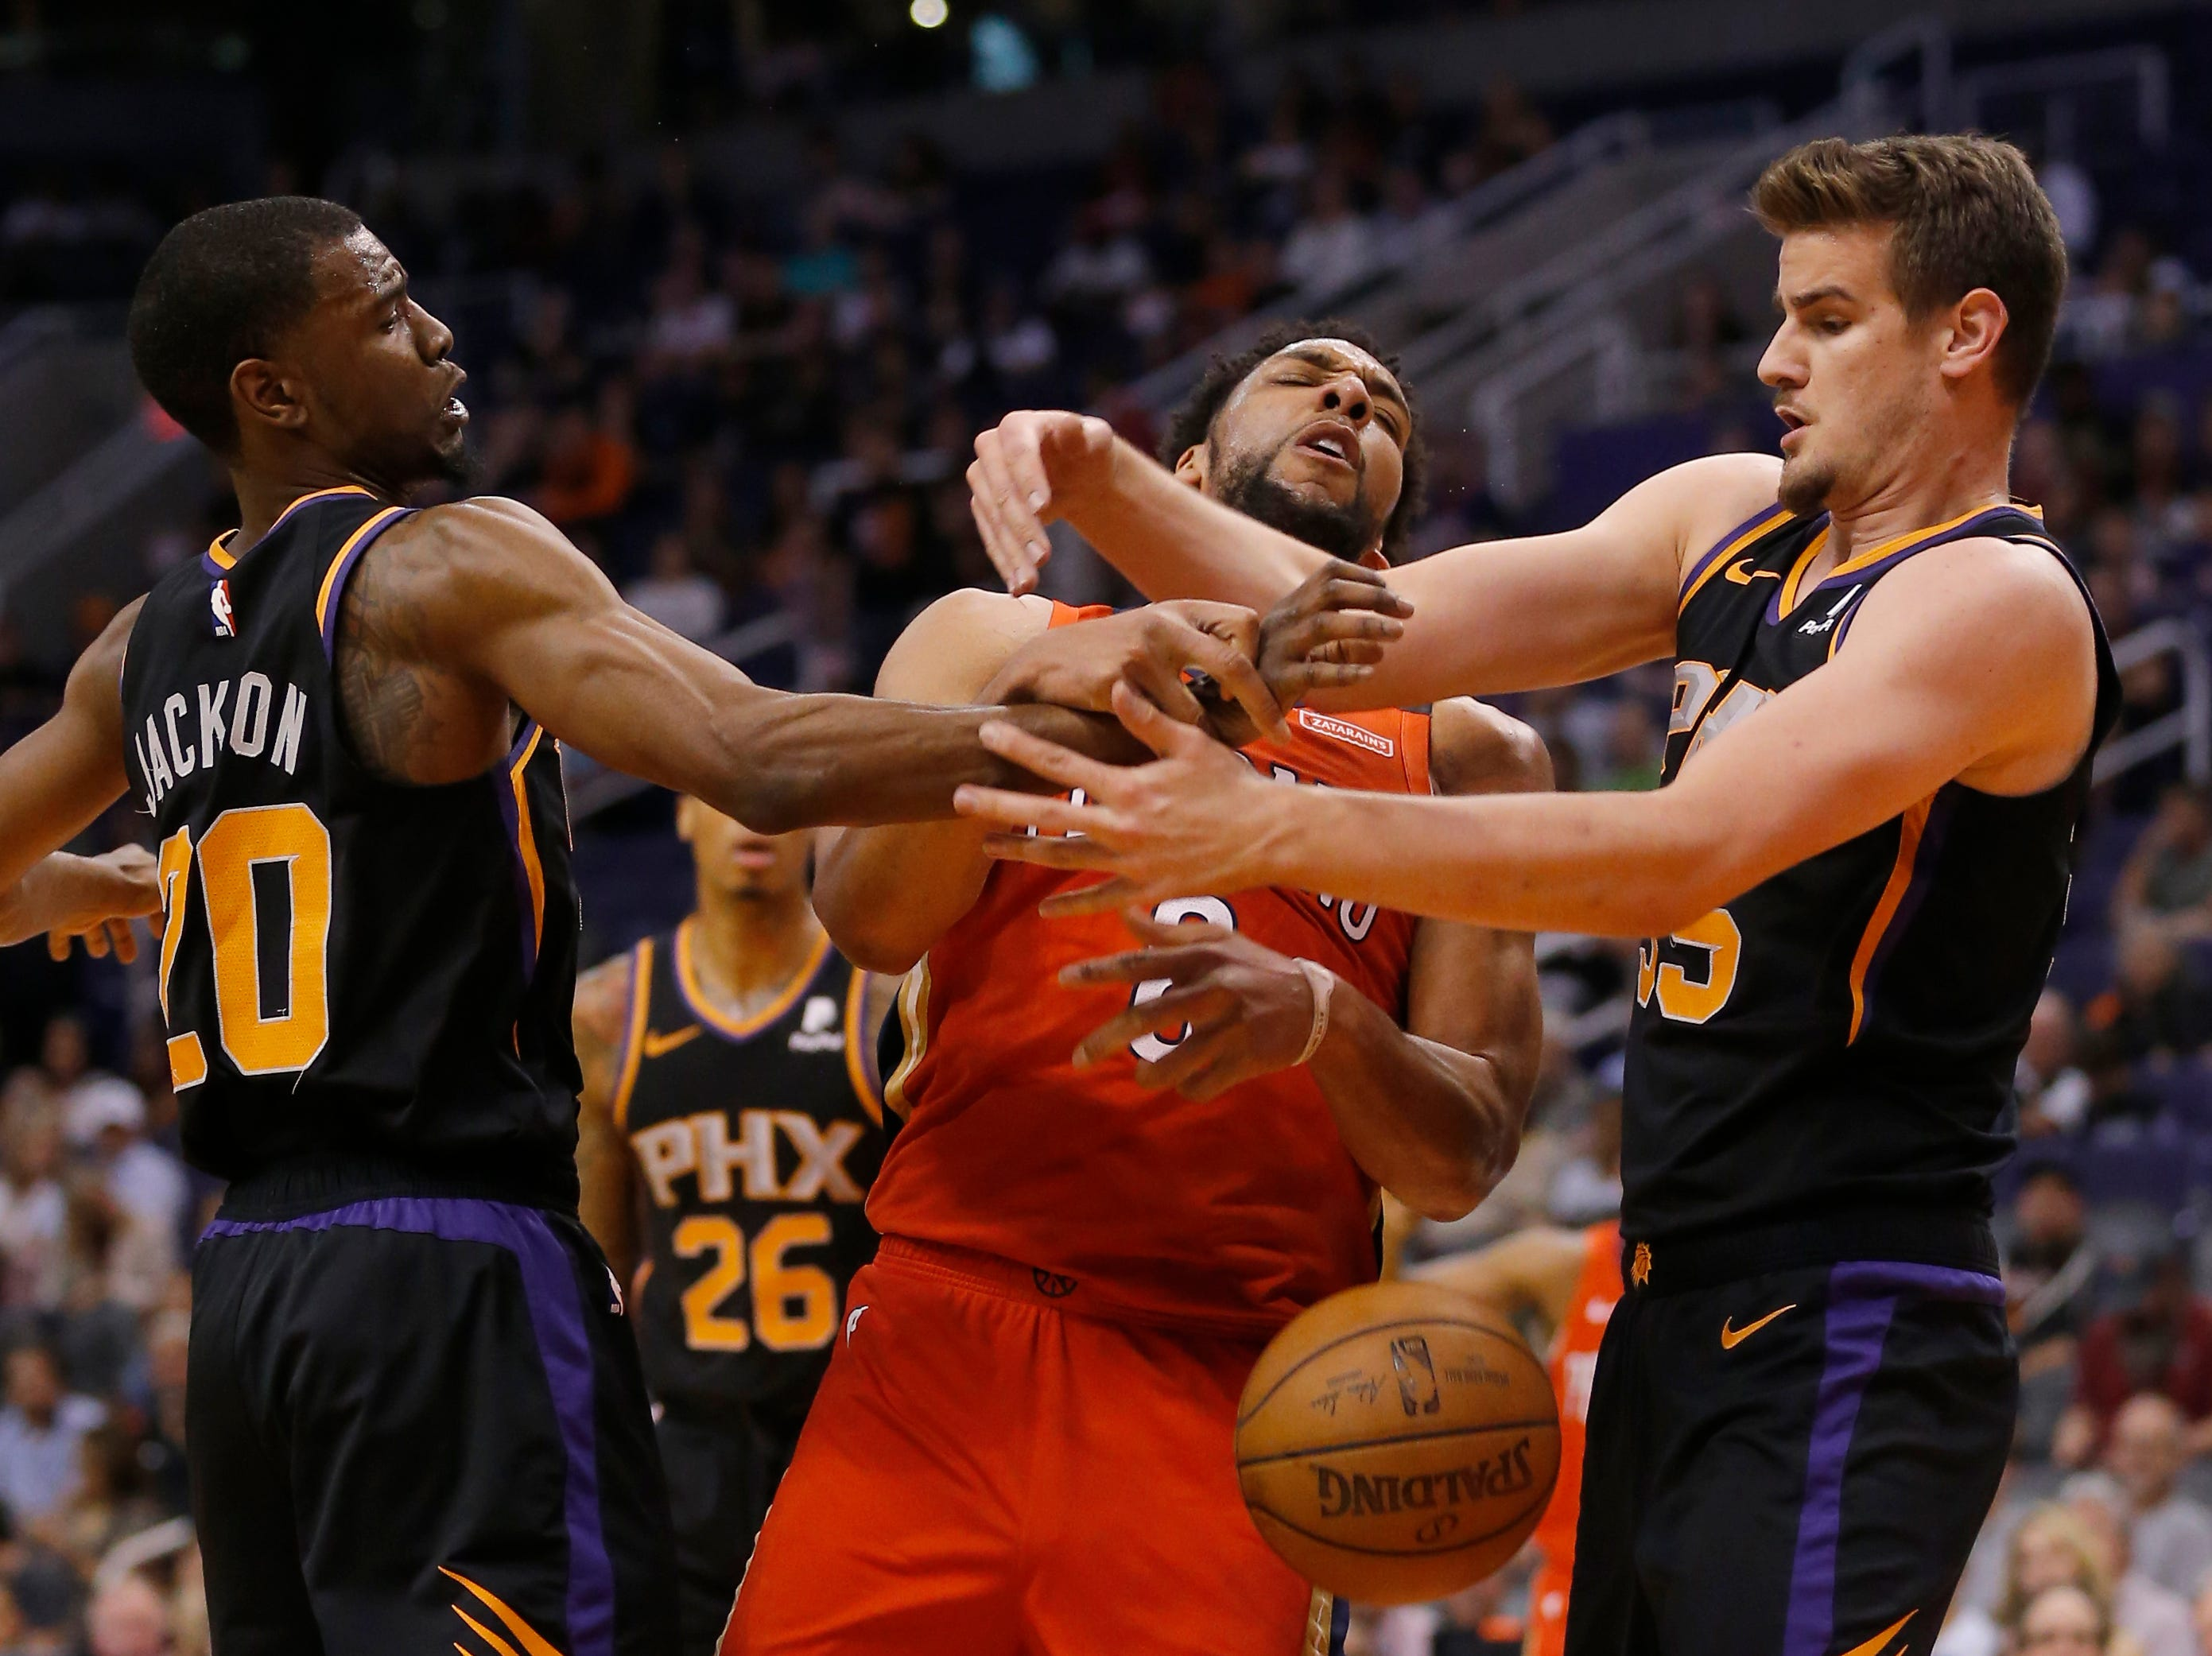 New Orleans Pelicans center Jahlil Okafor (8) battles for the loose ball with Phoenix Suns forward Josh Jackson (20) and Dragan Bender in the first half during an NBA basketball game, Friday, April 5, 2019, in Phoenix. (AP Photo/Rick Scuteri)